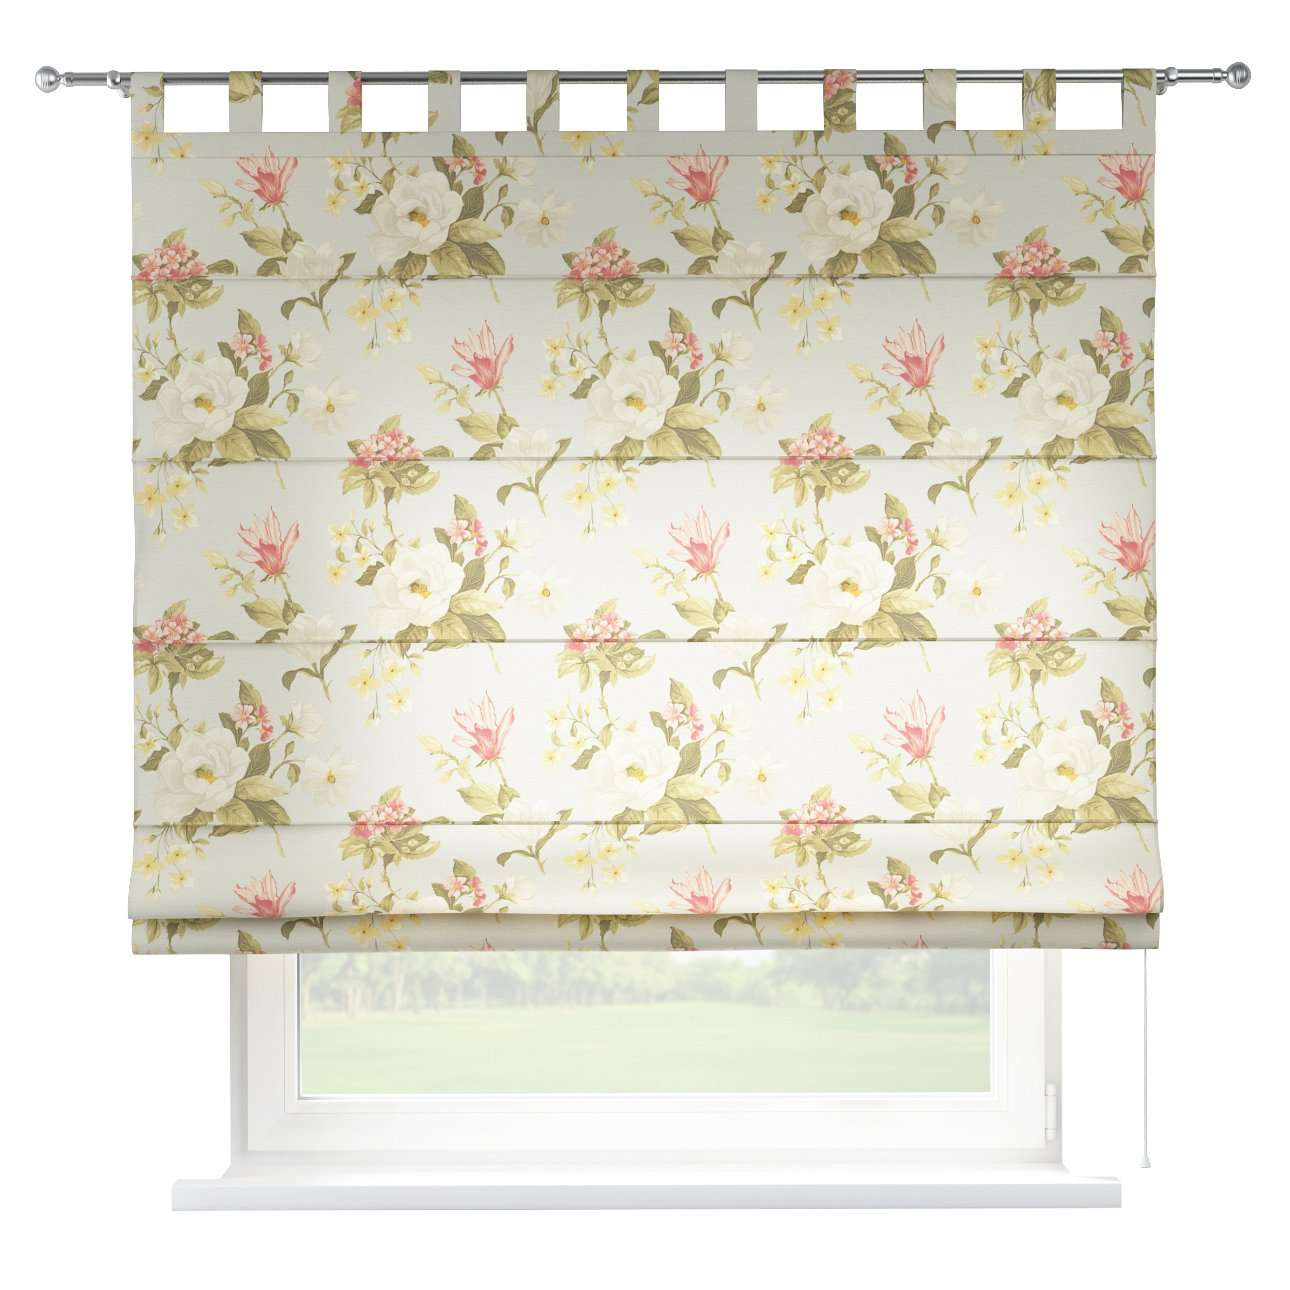 Verona tab top roman blind 80 x 170 cm (31.5 x 67 inch) in collection Londres, fabric: 123-65